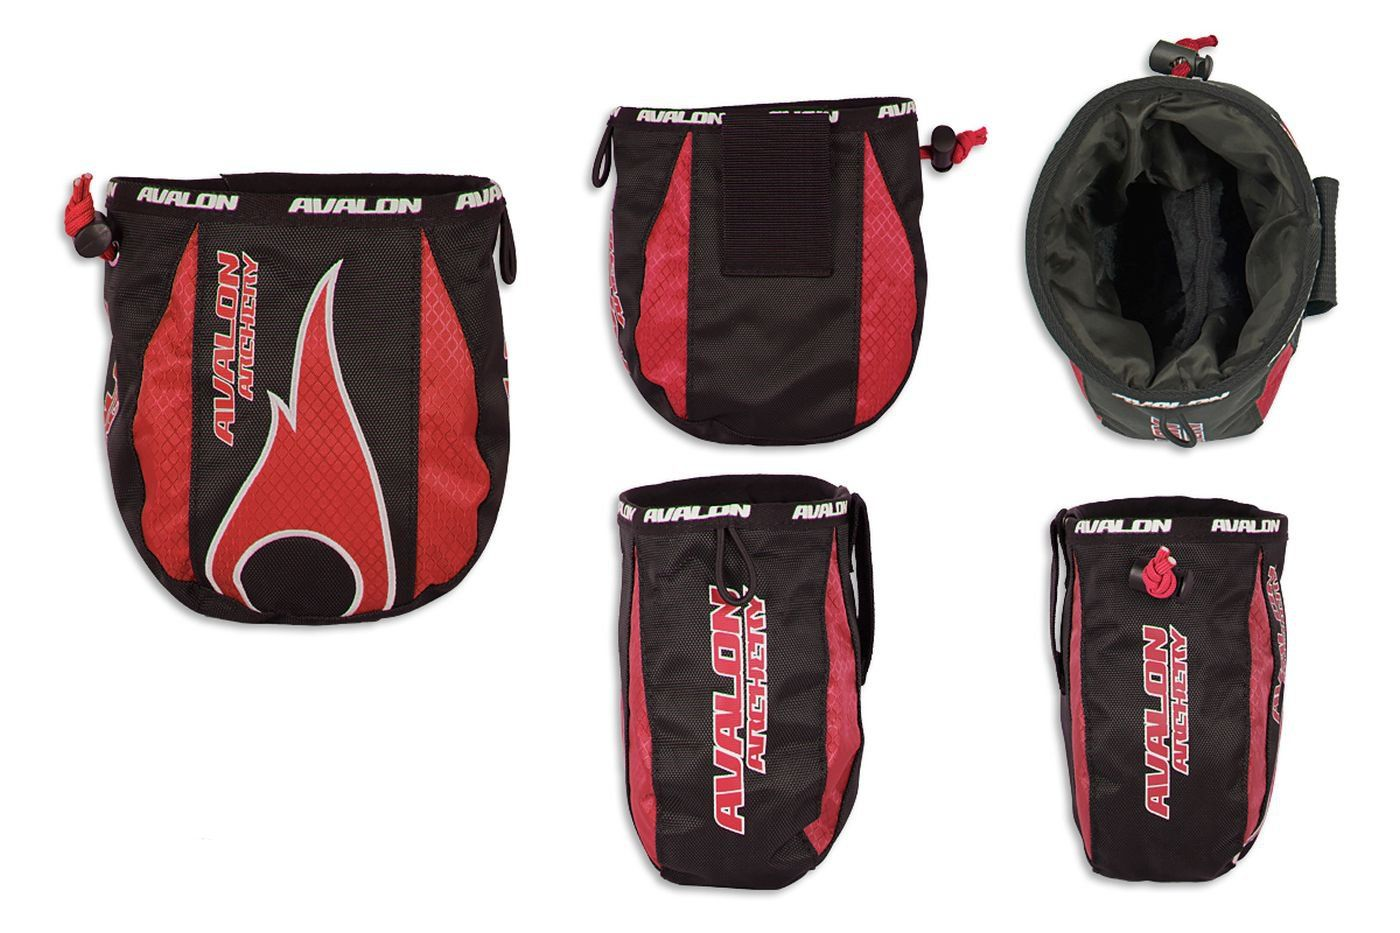 Avalon Archery Release Aid Belt Pouch